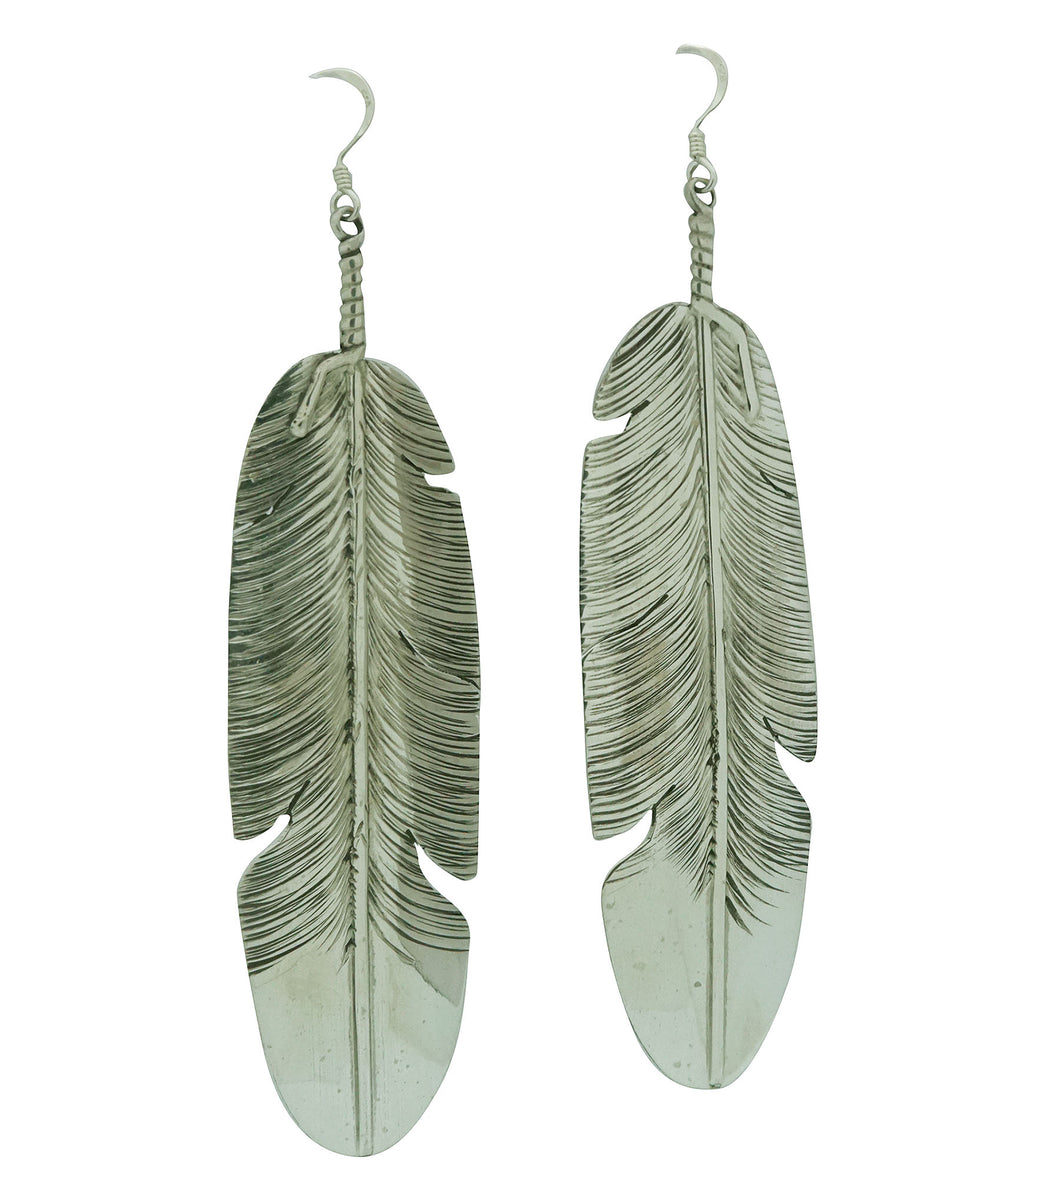 Ben Begaye, Earrings, Eagle Feather, Sterling Silver, Navajo Made, 4